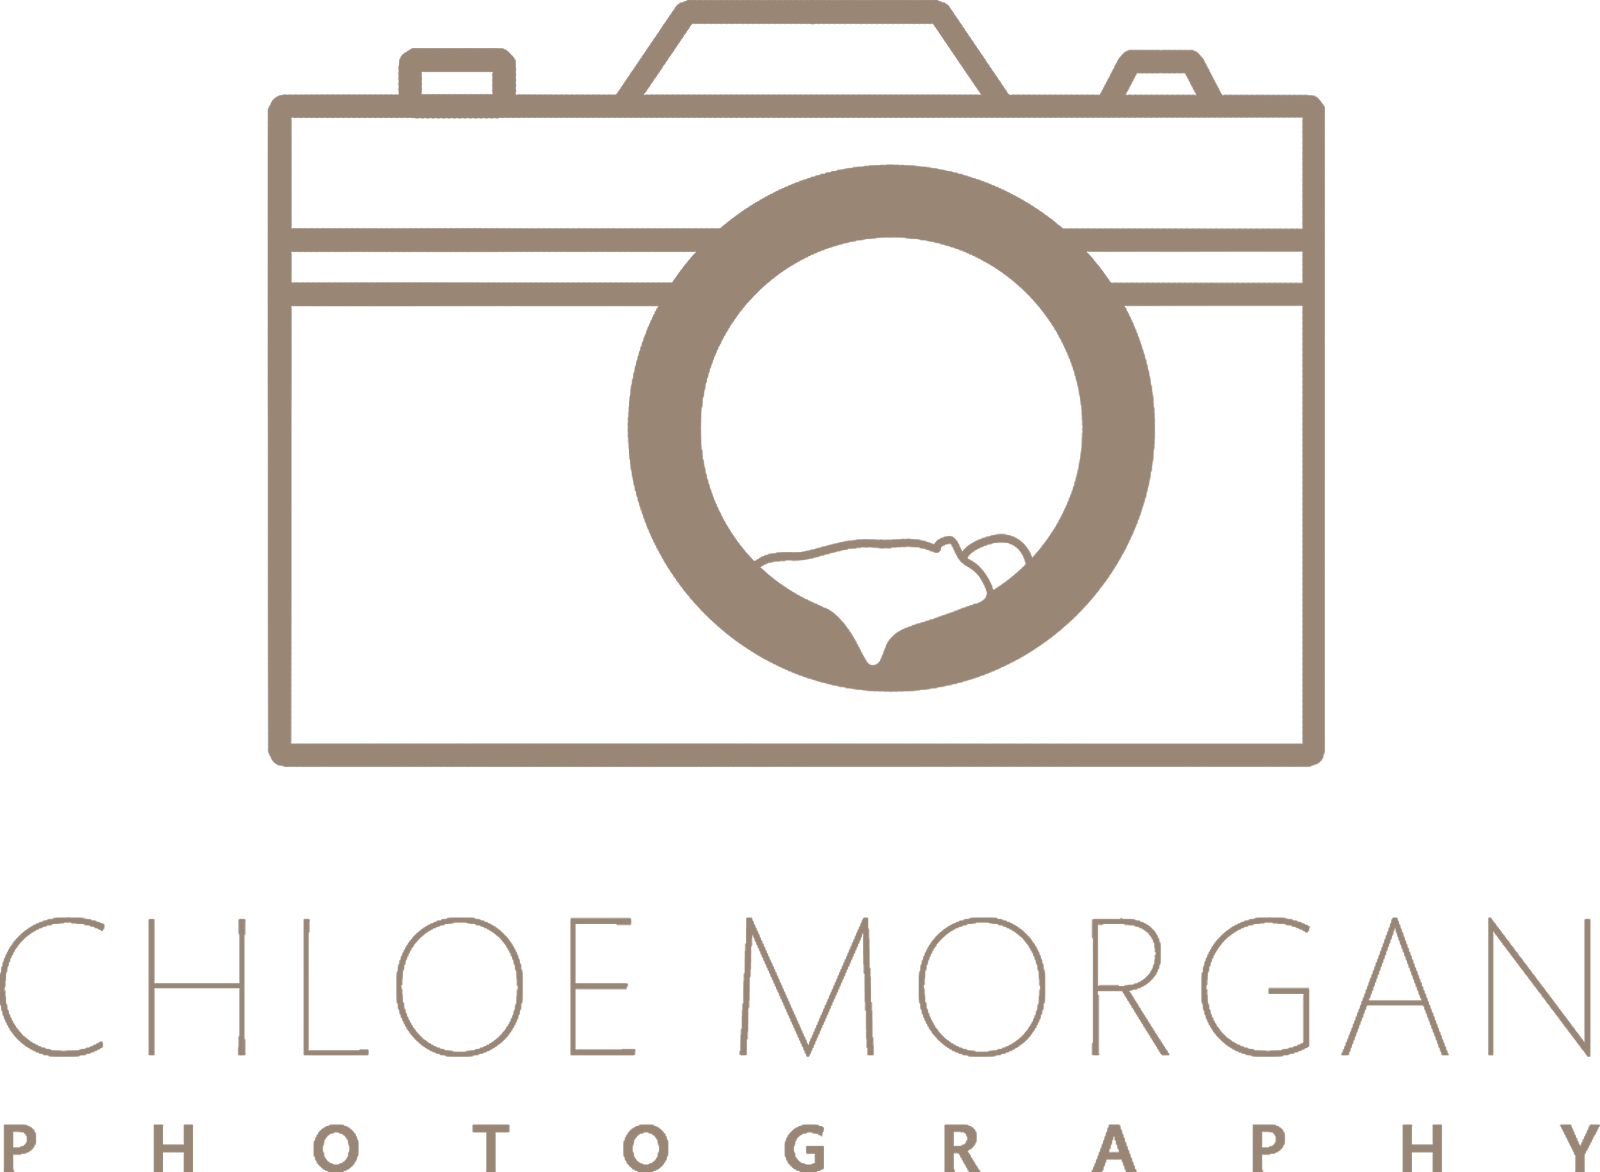 CHLOE MORGAN PHOTOGRAPHY